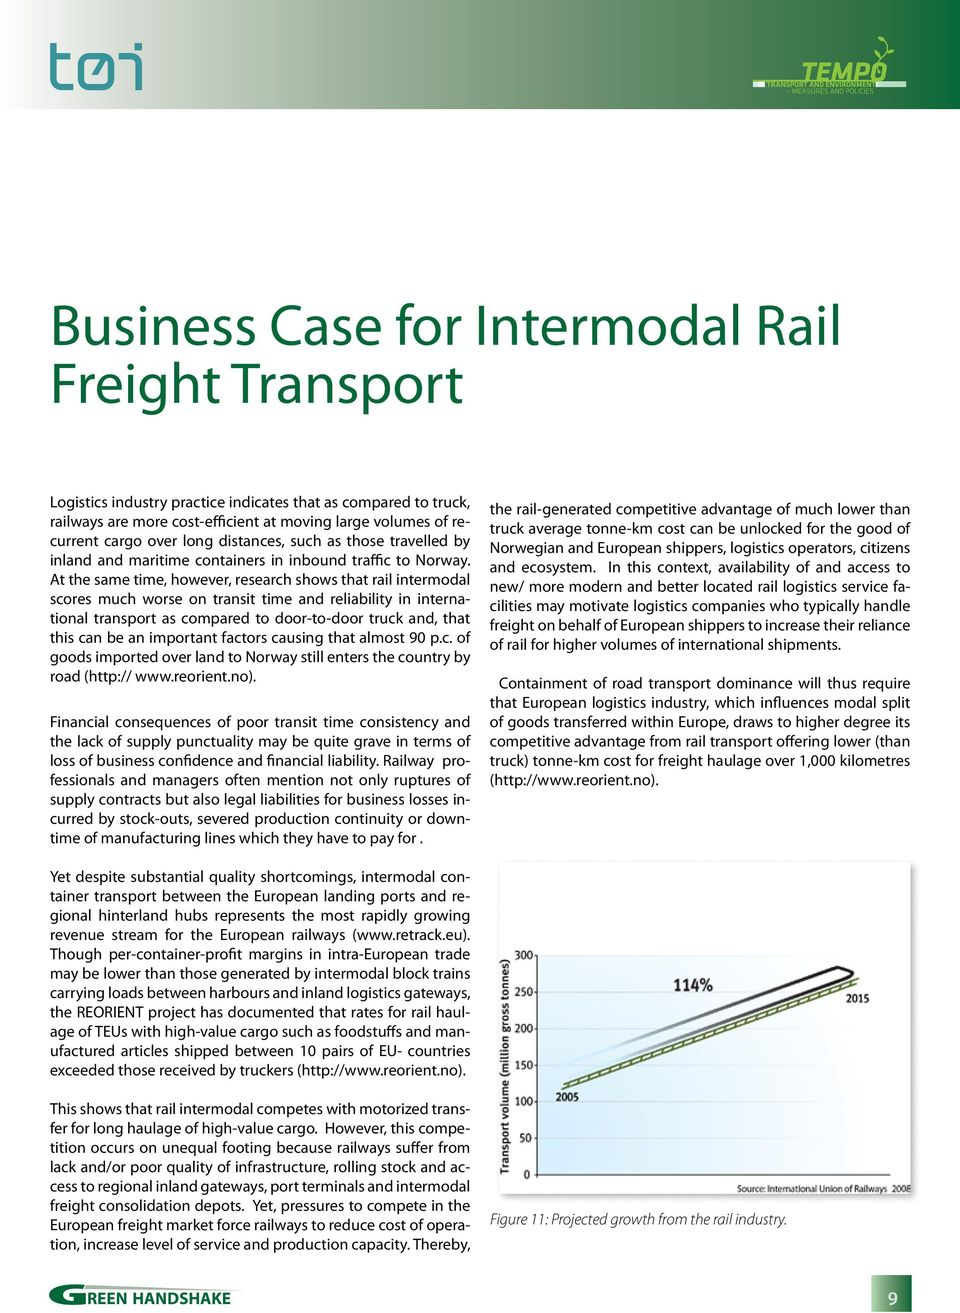 At the same time, however, research shows that rail intermodal scores much worse on transit time and reliability in international transport as compared to door-to-door truck and, that this can be an